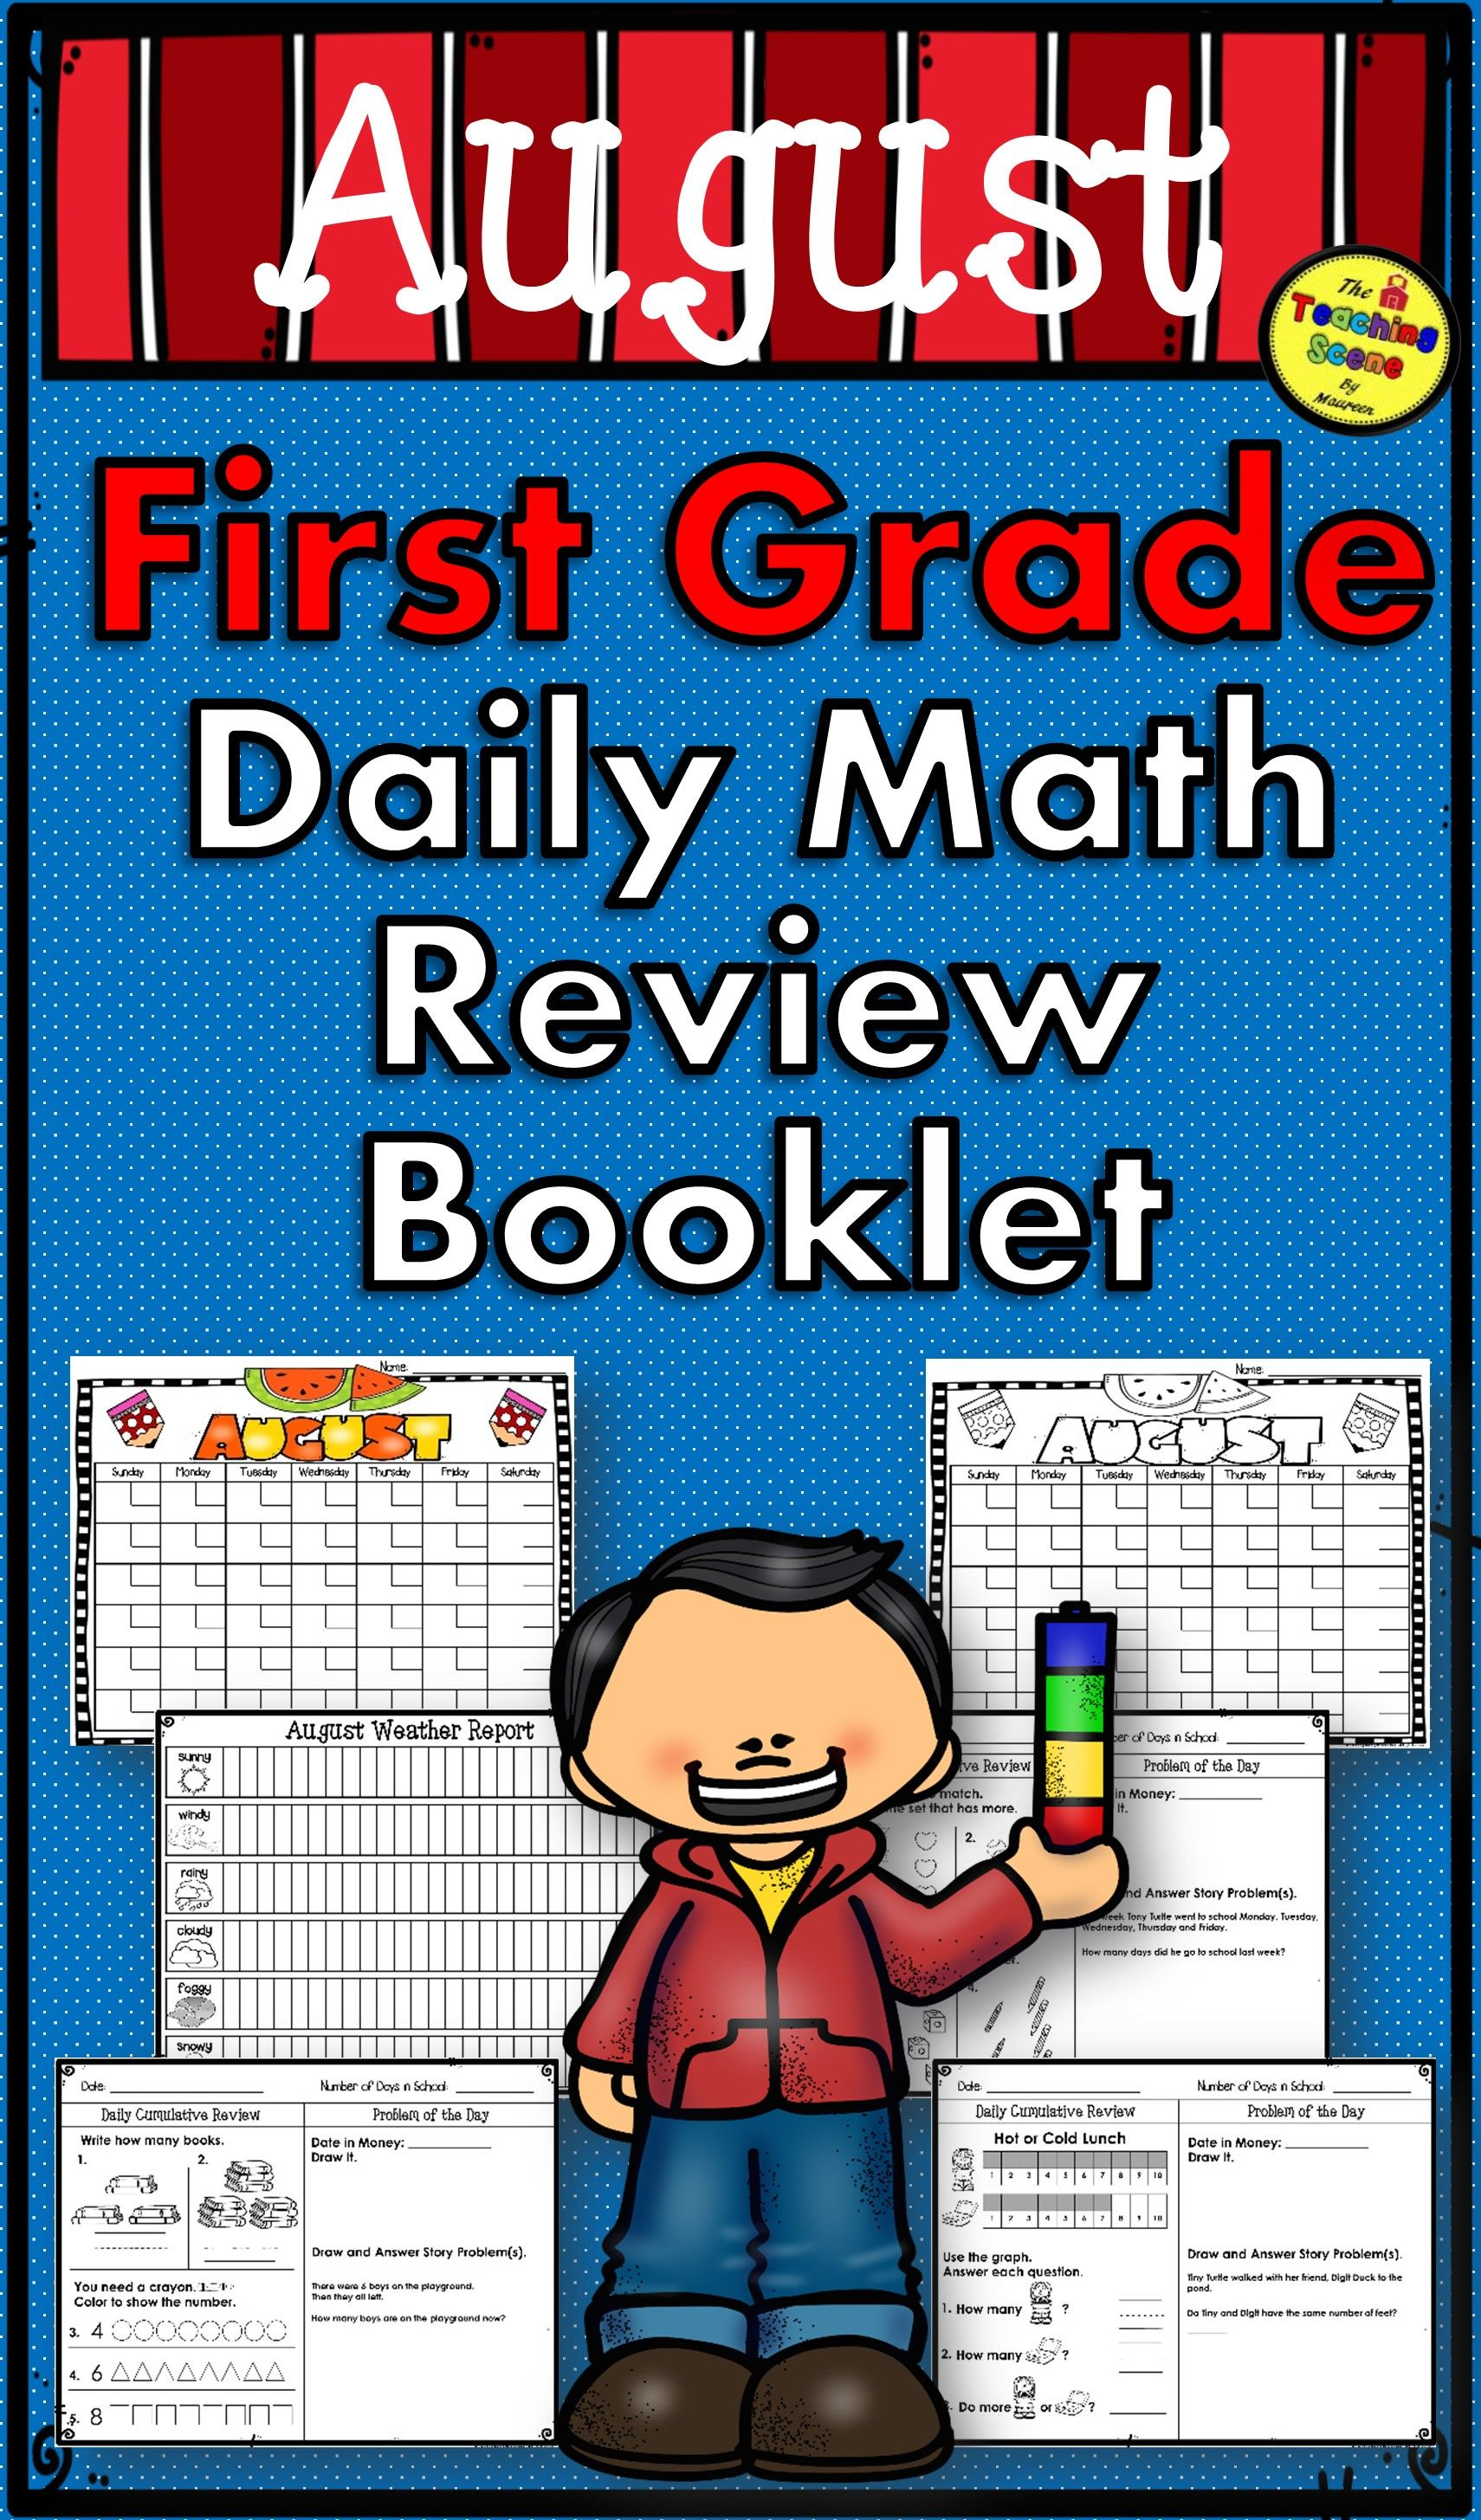 First Grade Daily Calendar And Math Review Booklet For